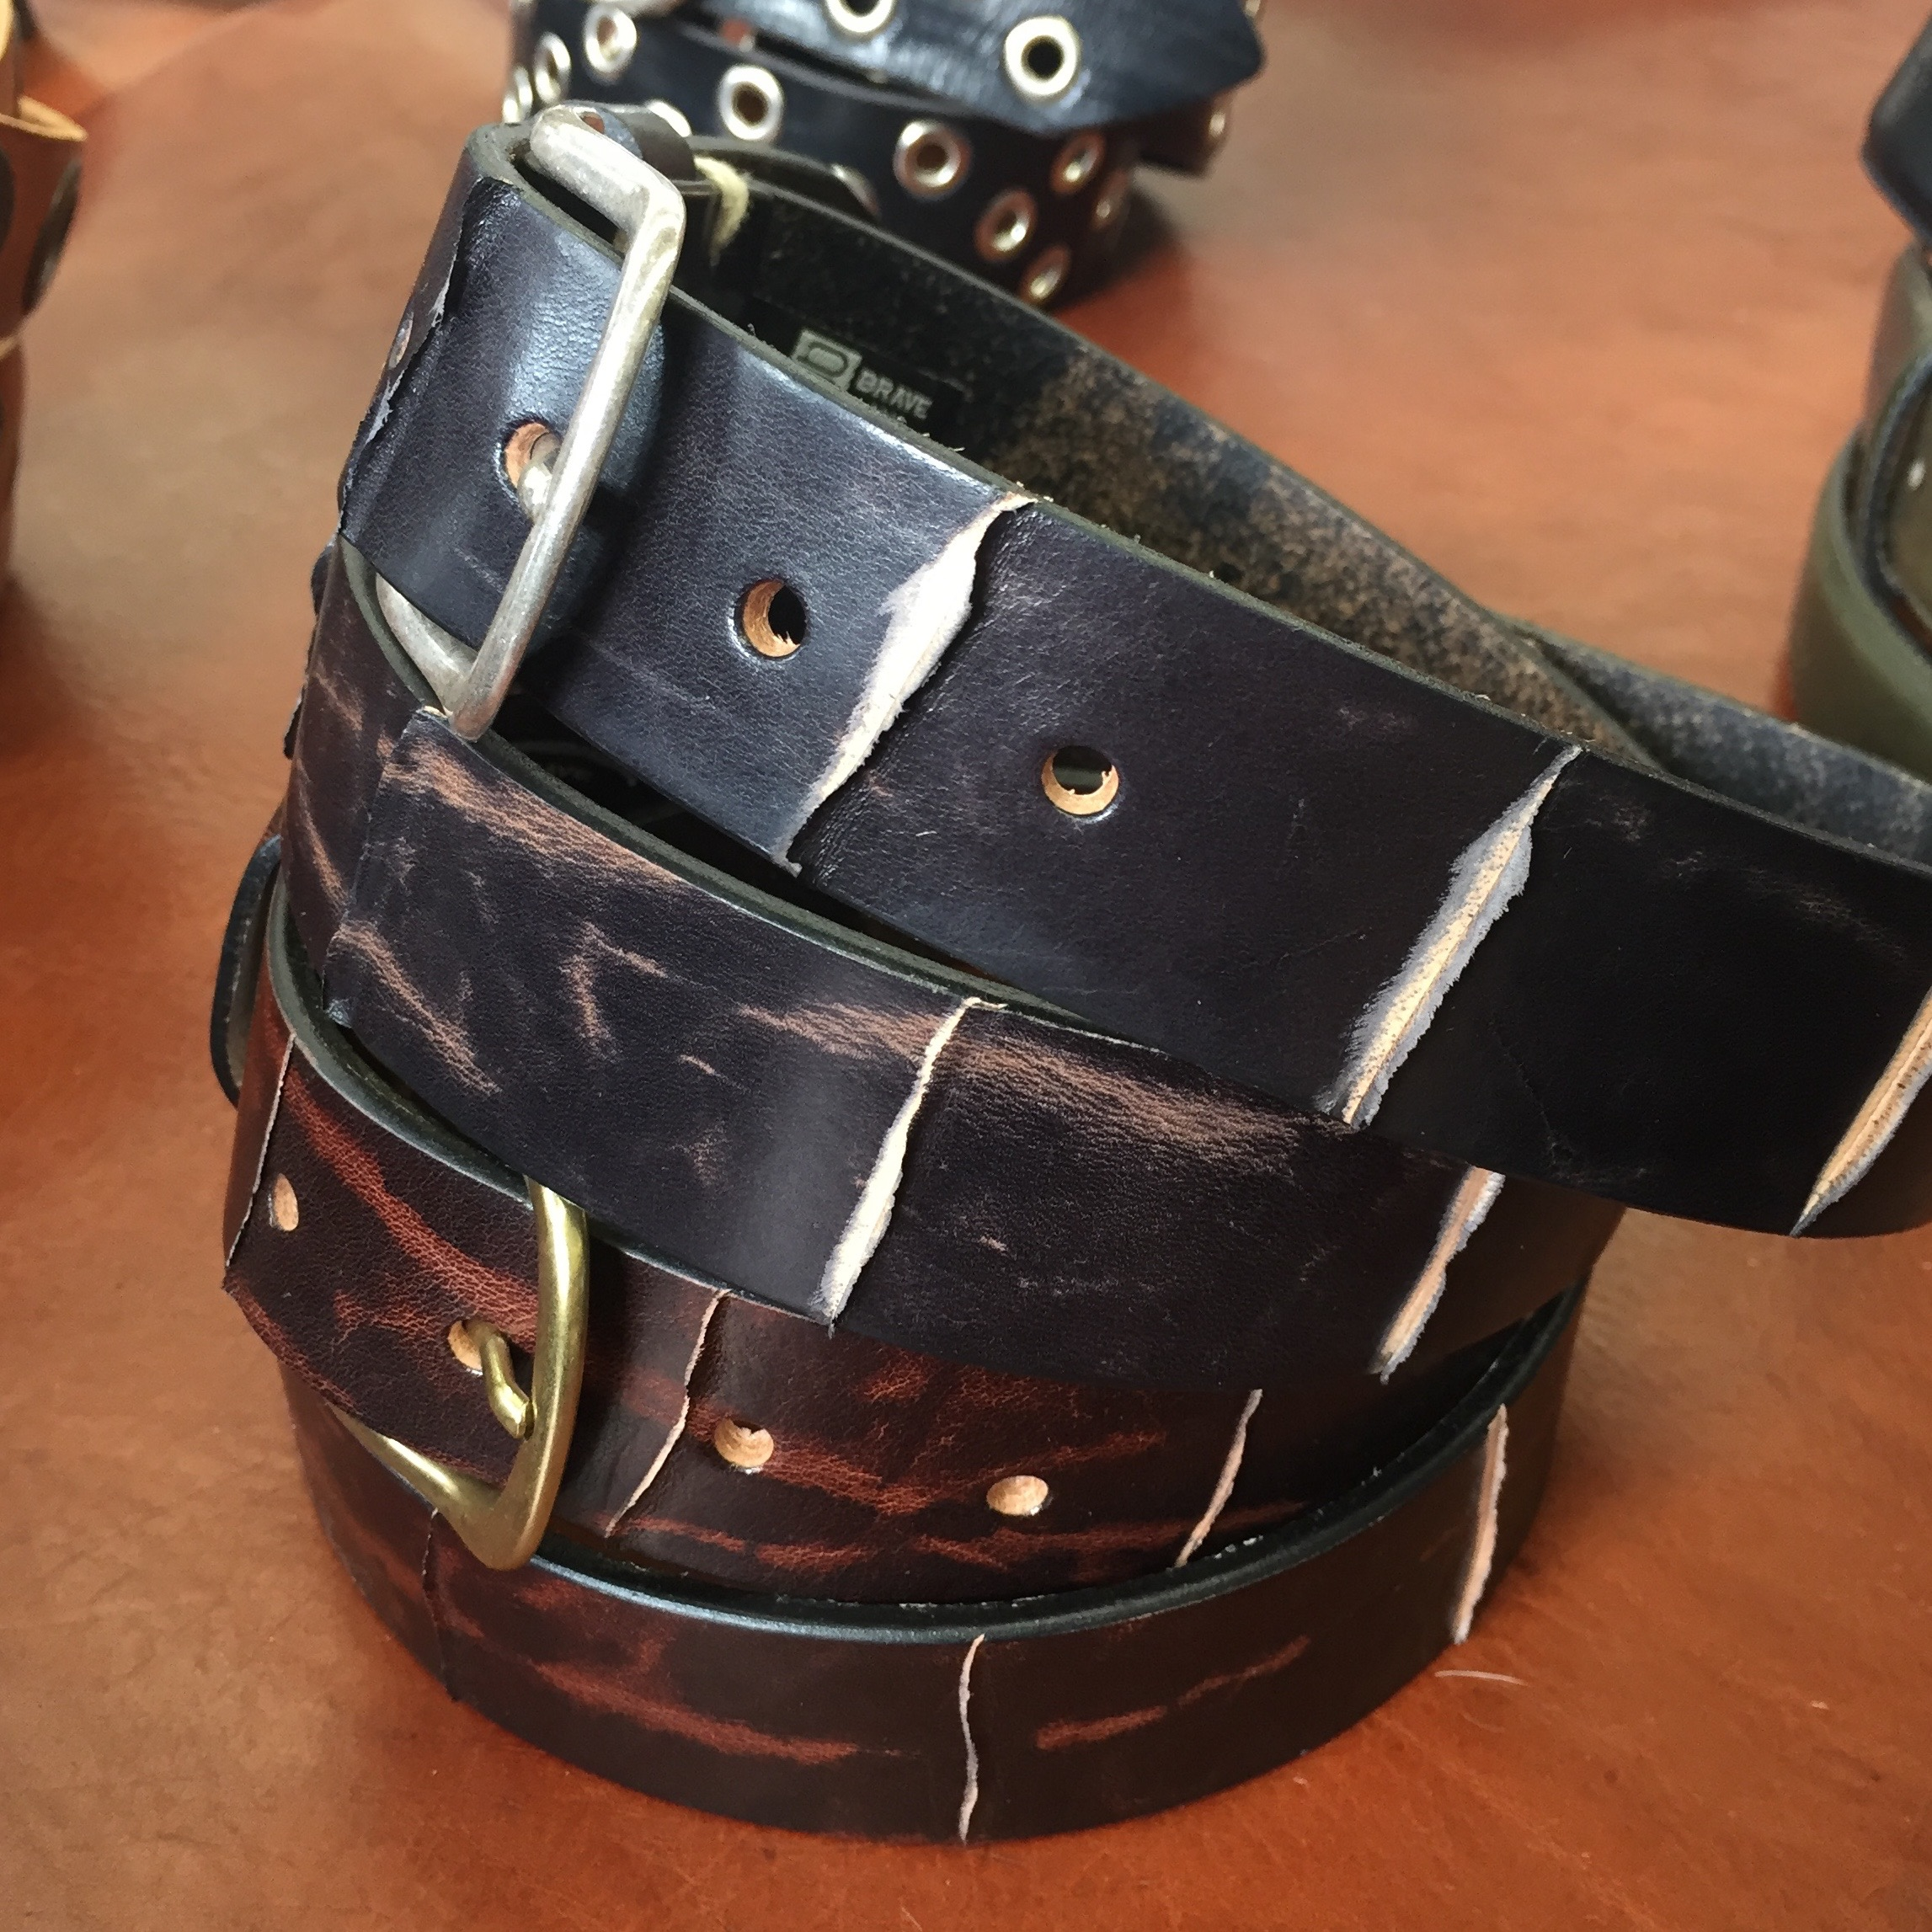 These mens belts have an interesting sliced detail that's a bit punky and deconstructed.